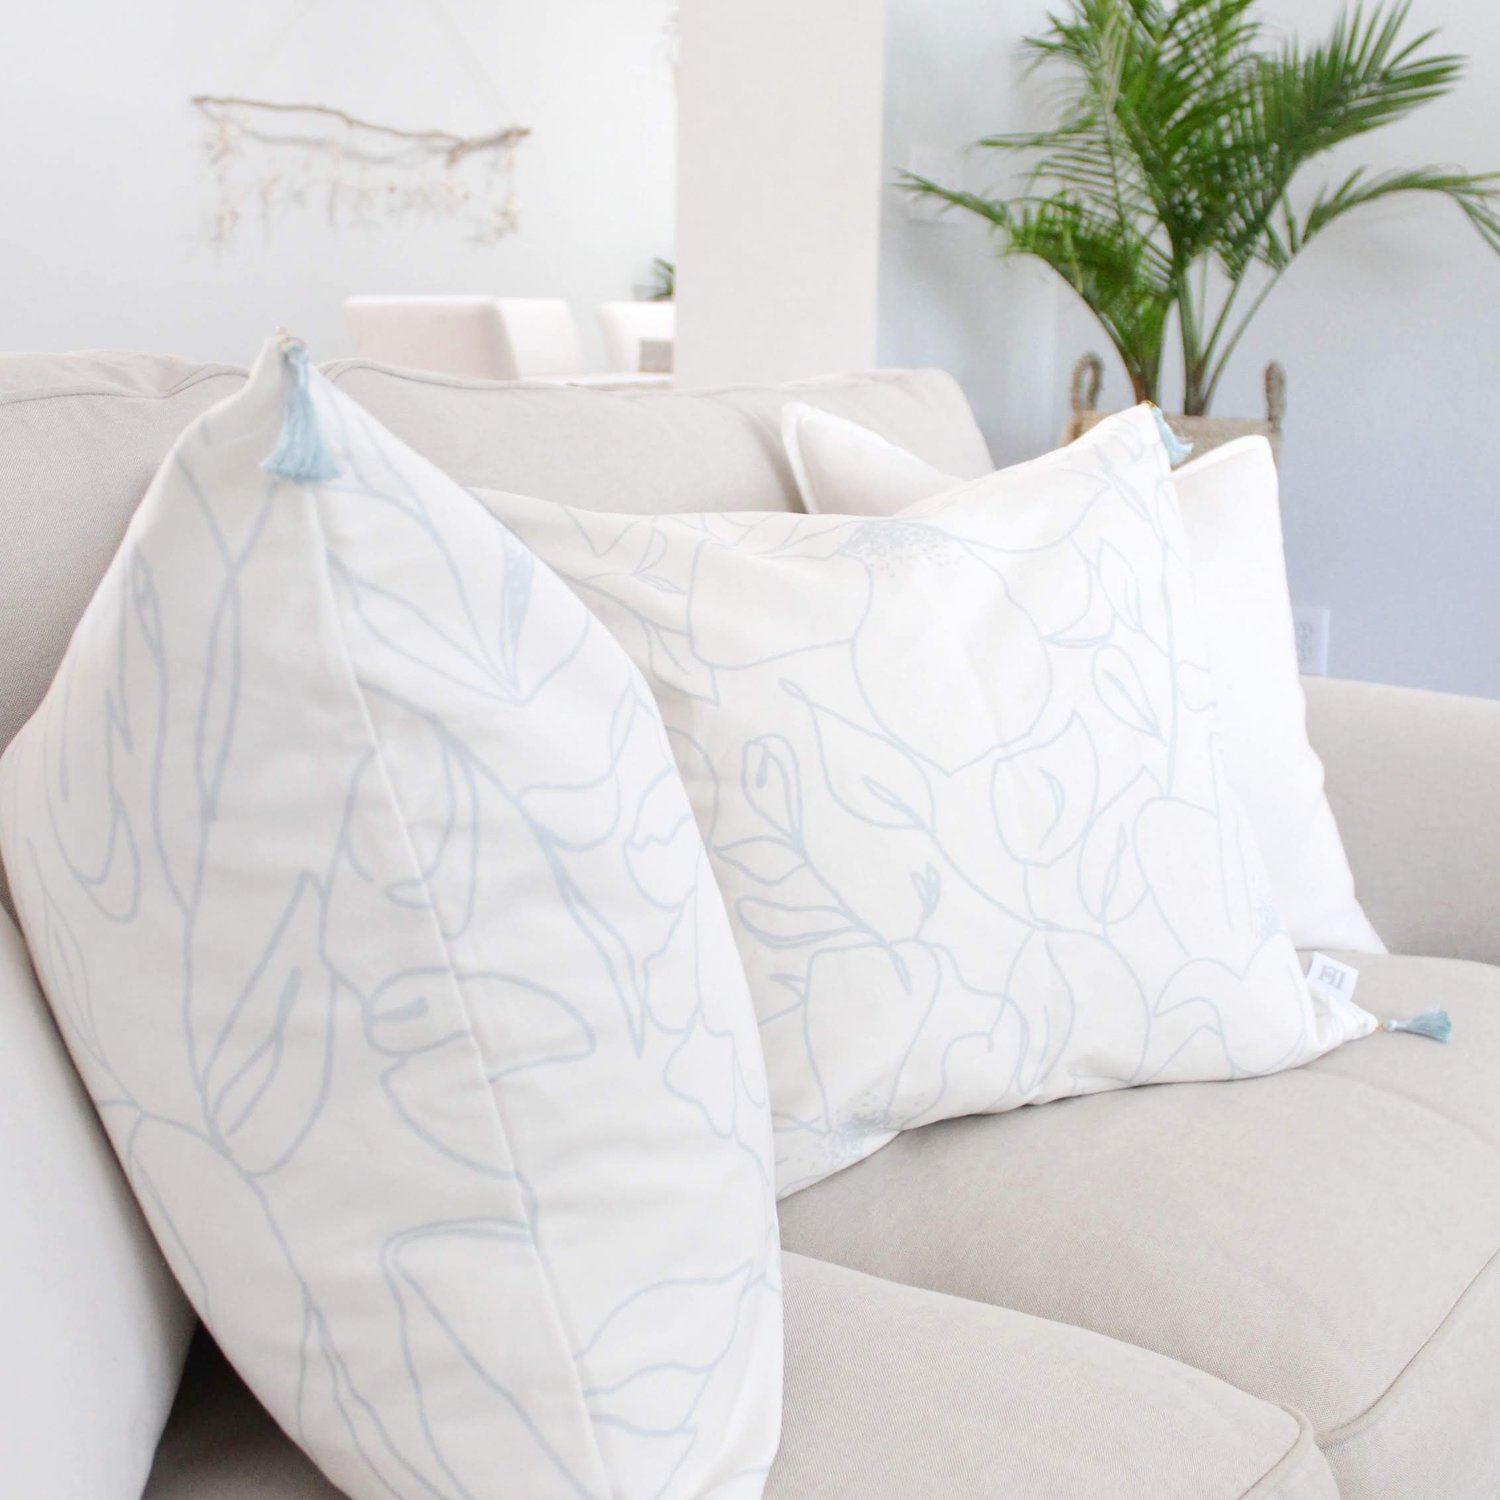 Remarkable The Best Throw Pillow Inserts That Never Need To Be Re Bralicious Painted Fabric Chair Ideas Braliciousco